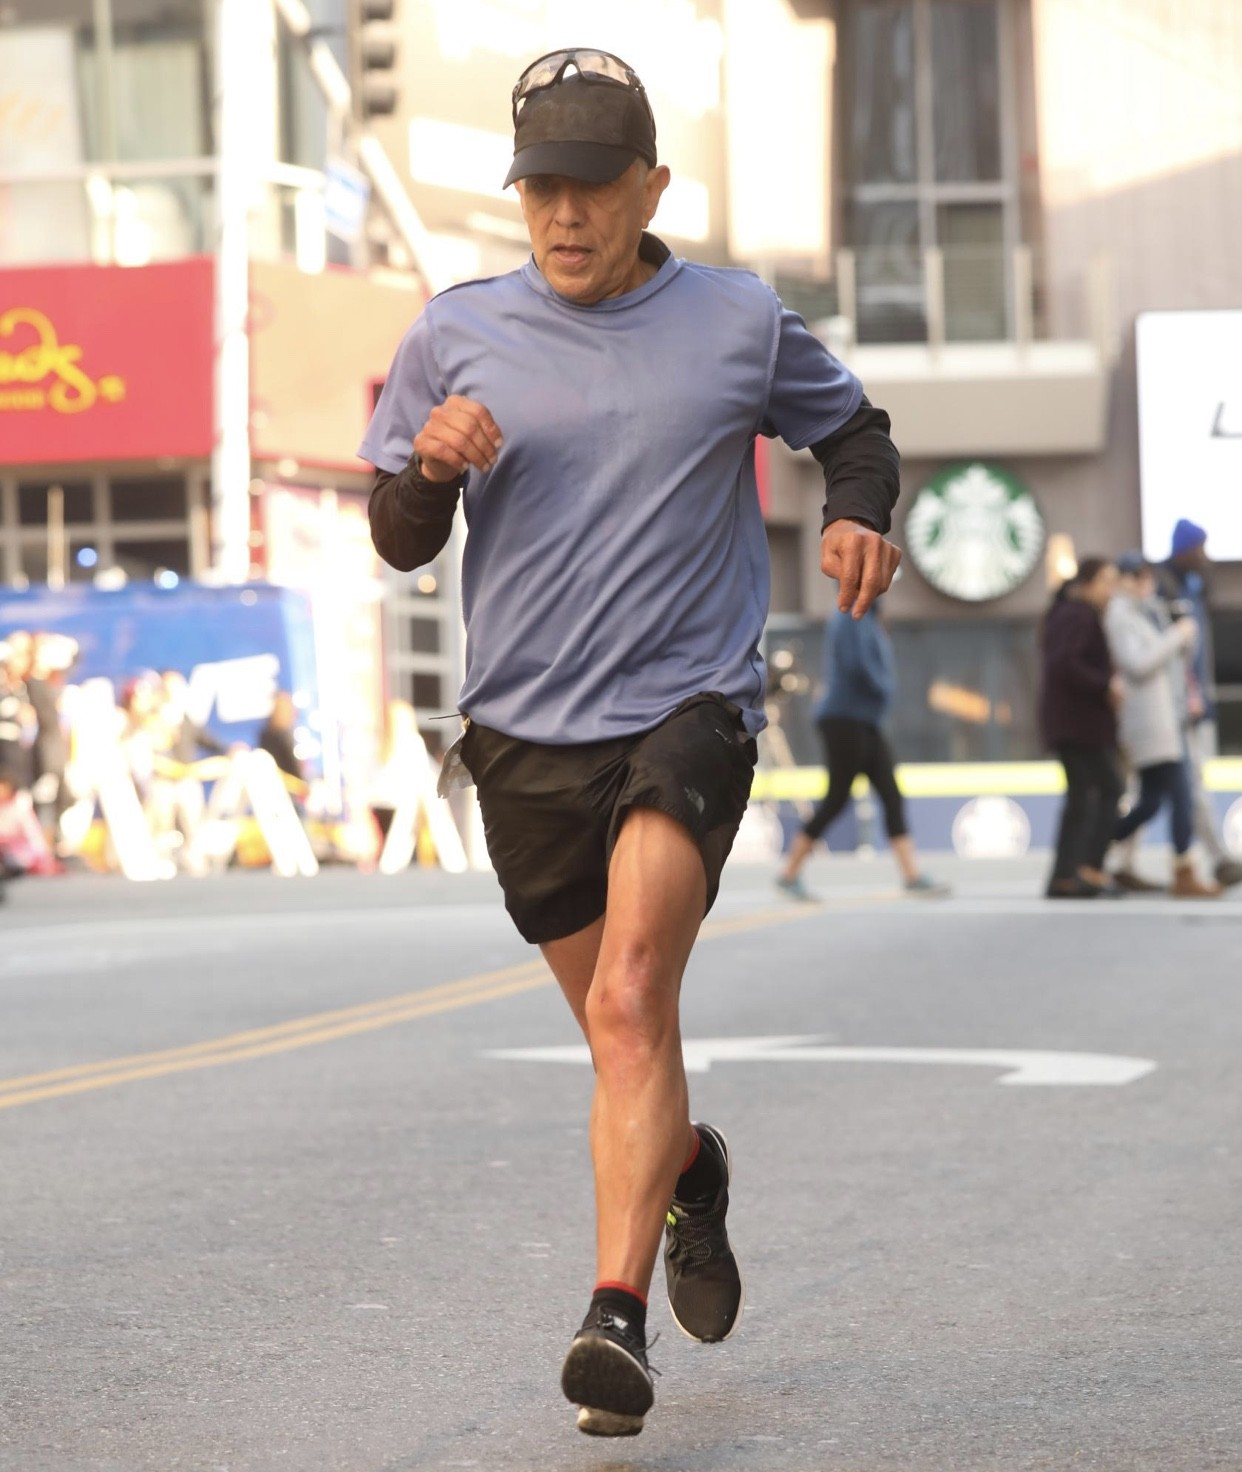 70-year-old Frank Meza who was disqualified after clocking 2:53:10 at the Los Angeles marathon has been found dead